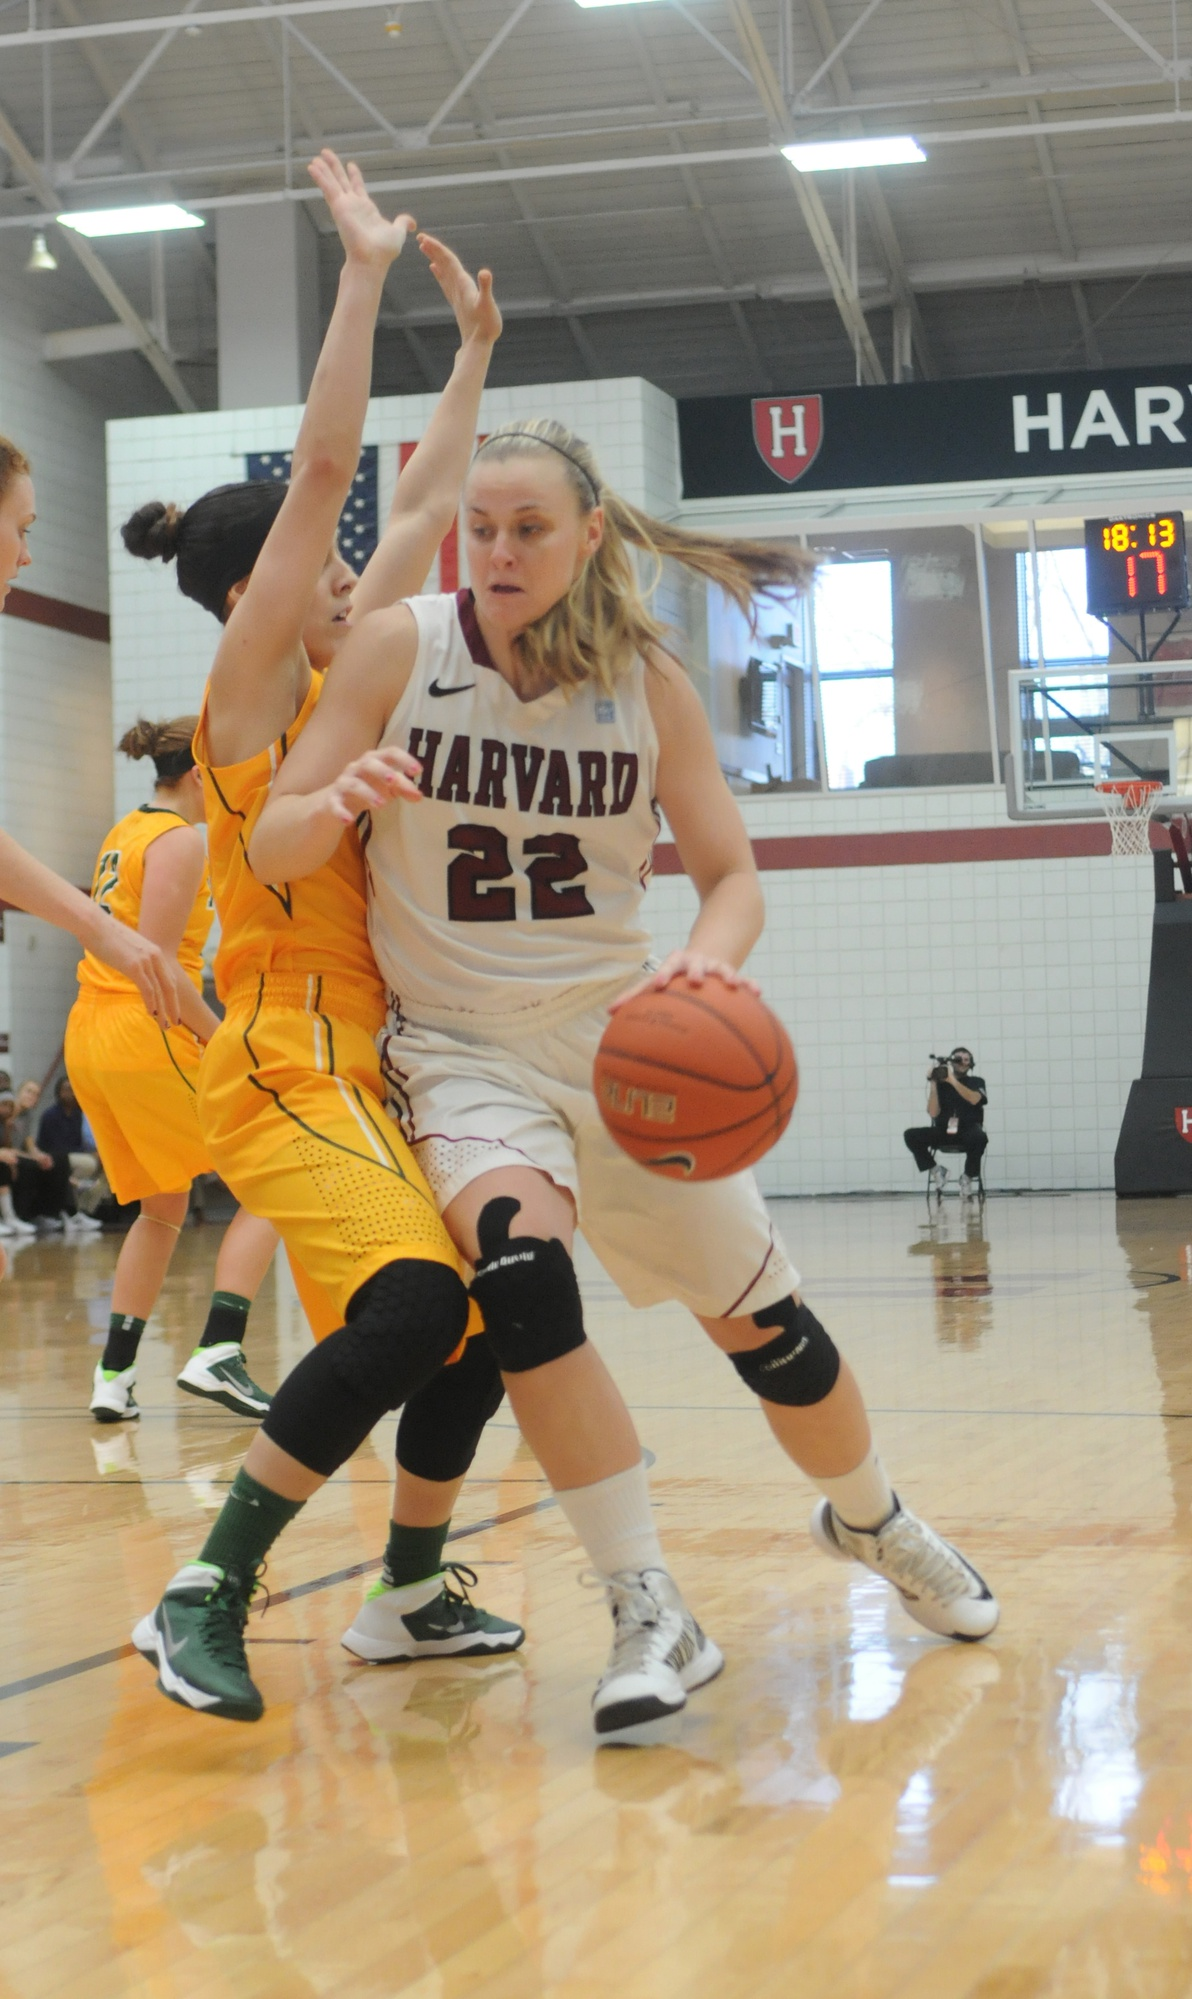 Co-captain Christine Clark put up a game-high 21 points in women's basketball's 84-56 victory over North Dakota State on Saturday.